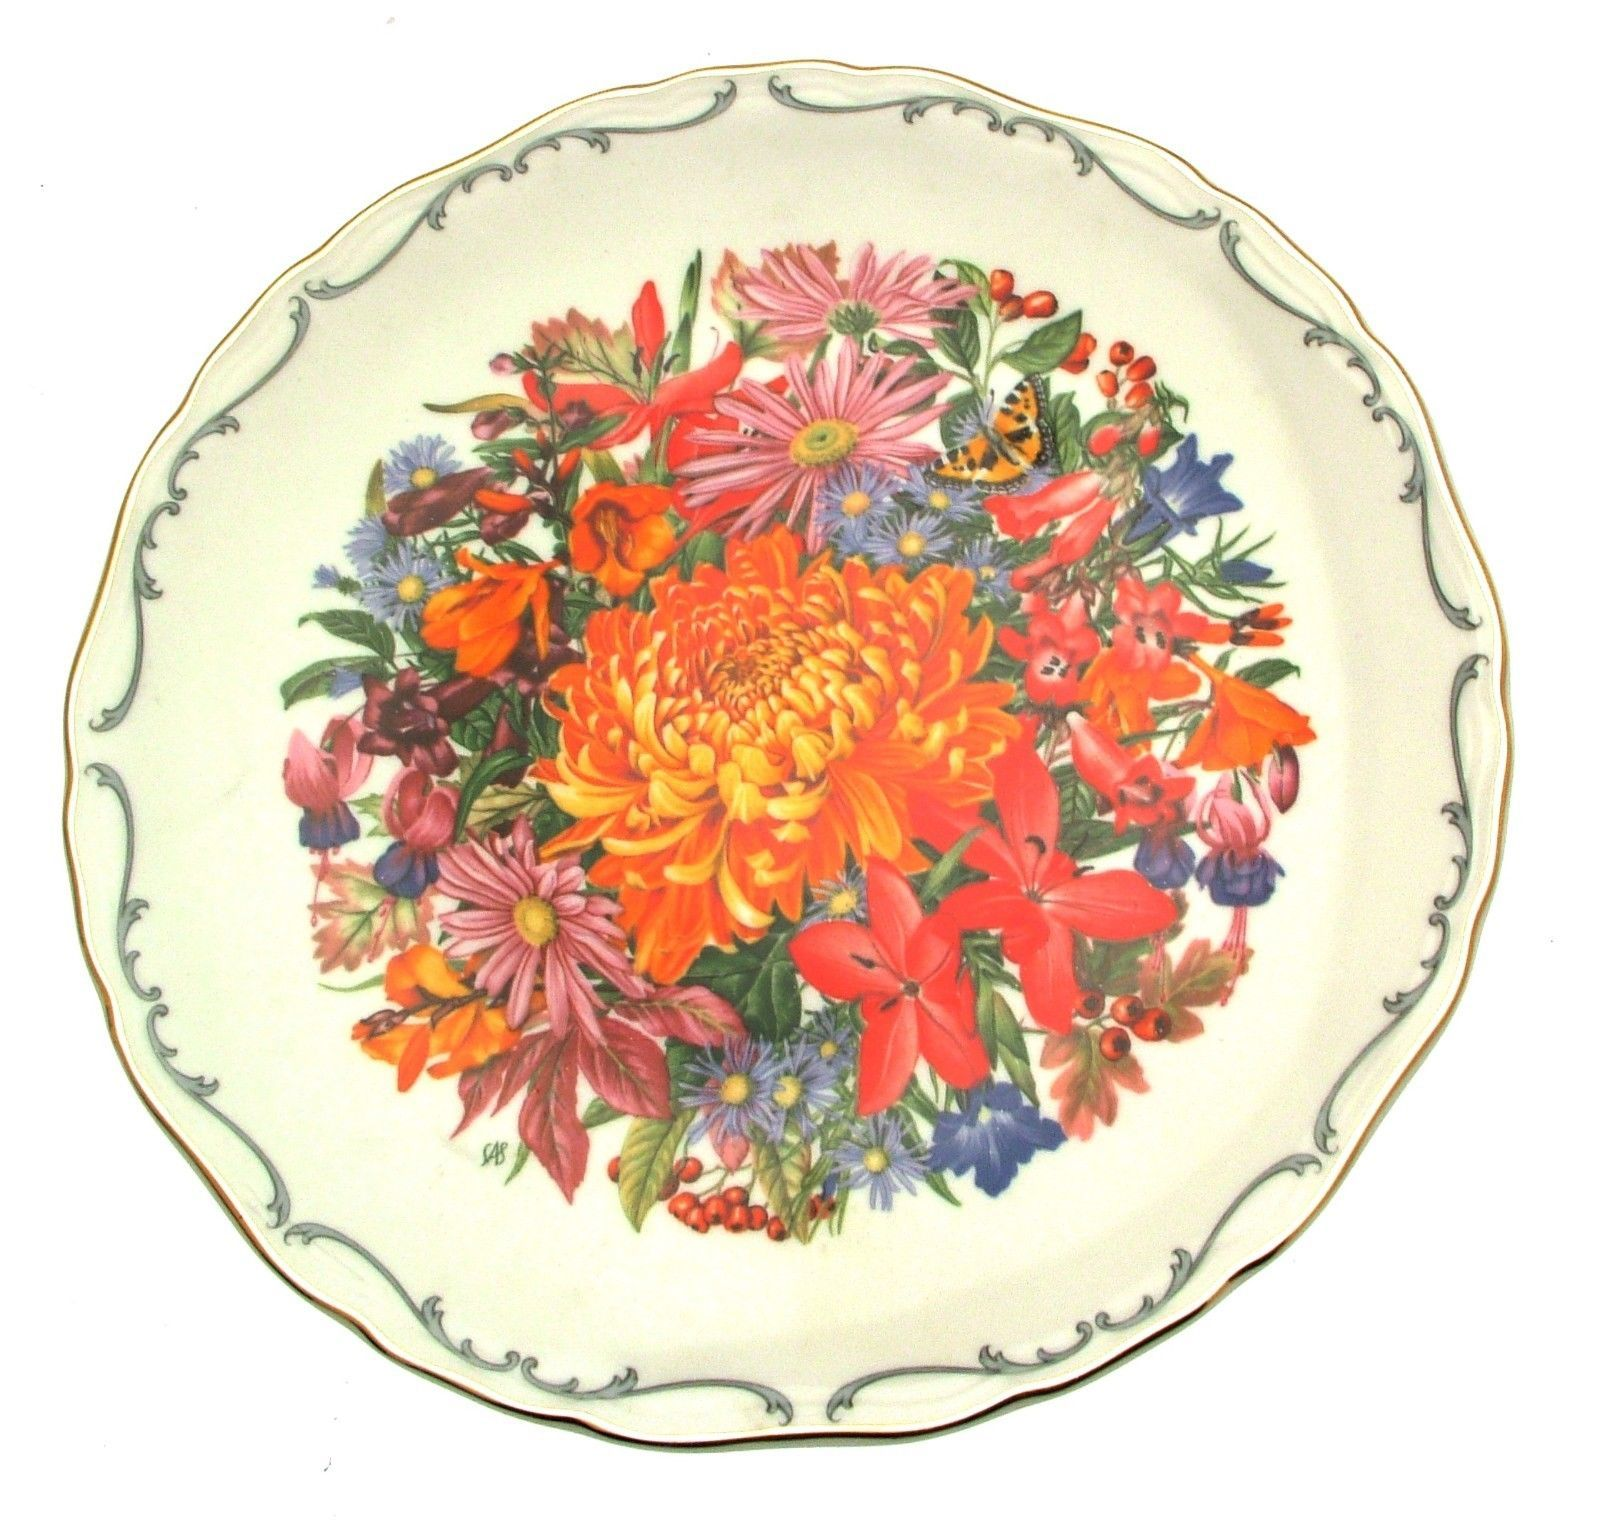 Royal Albert Autumn Glory Flower Festival Sara Anne Schofield Floral Plate